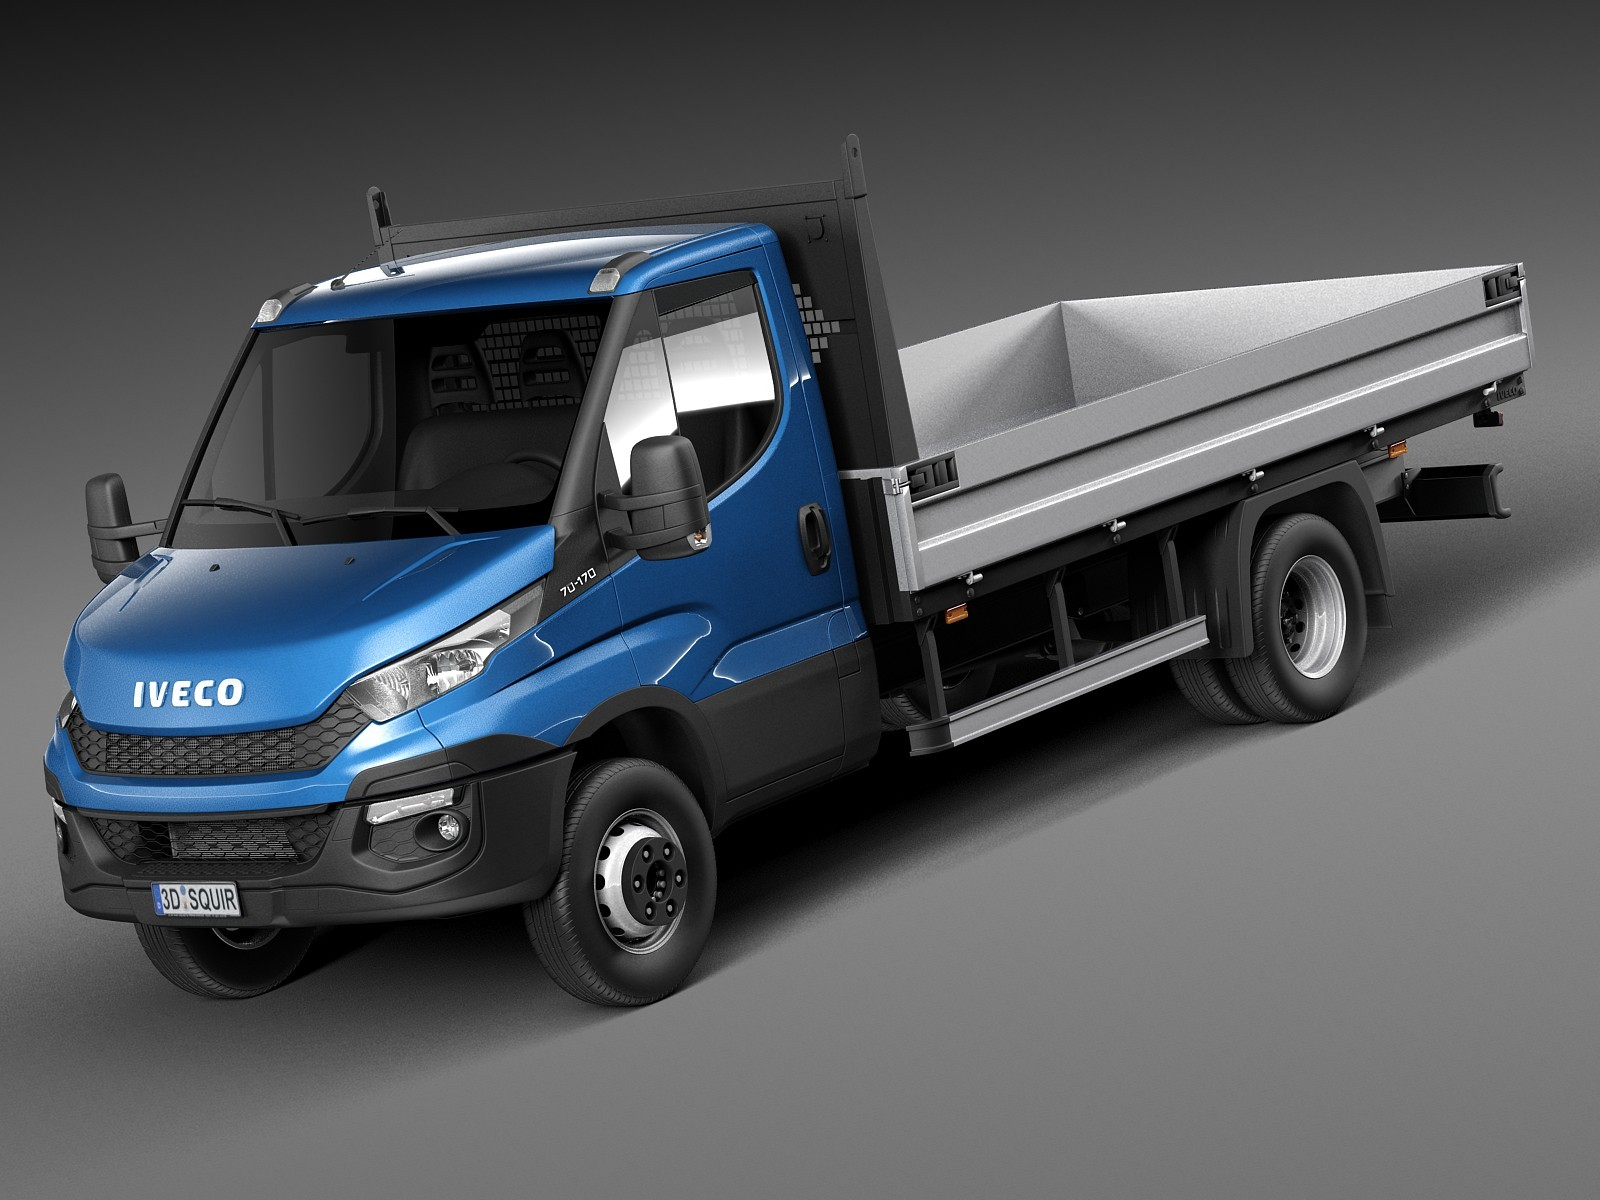 iveco daily chassis cab pickup 2015 van heavy vehicle. Black Bedroom Furniture Sets. Home Design Ideas